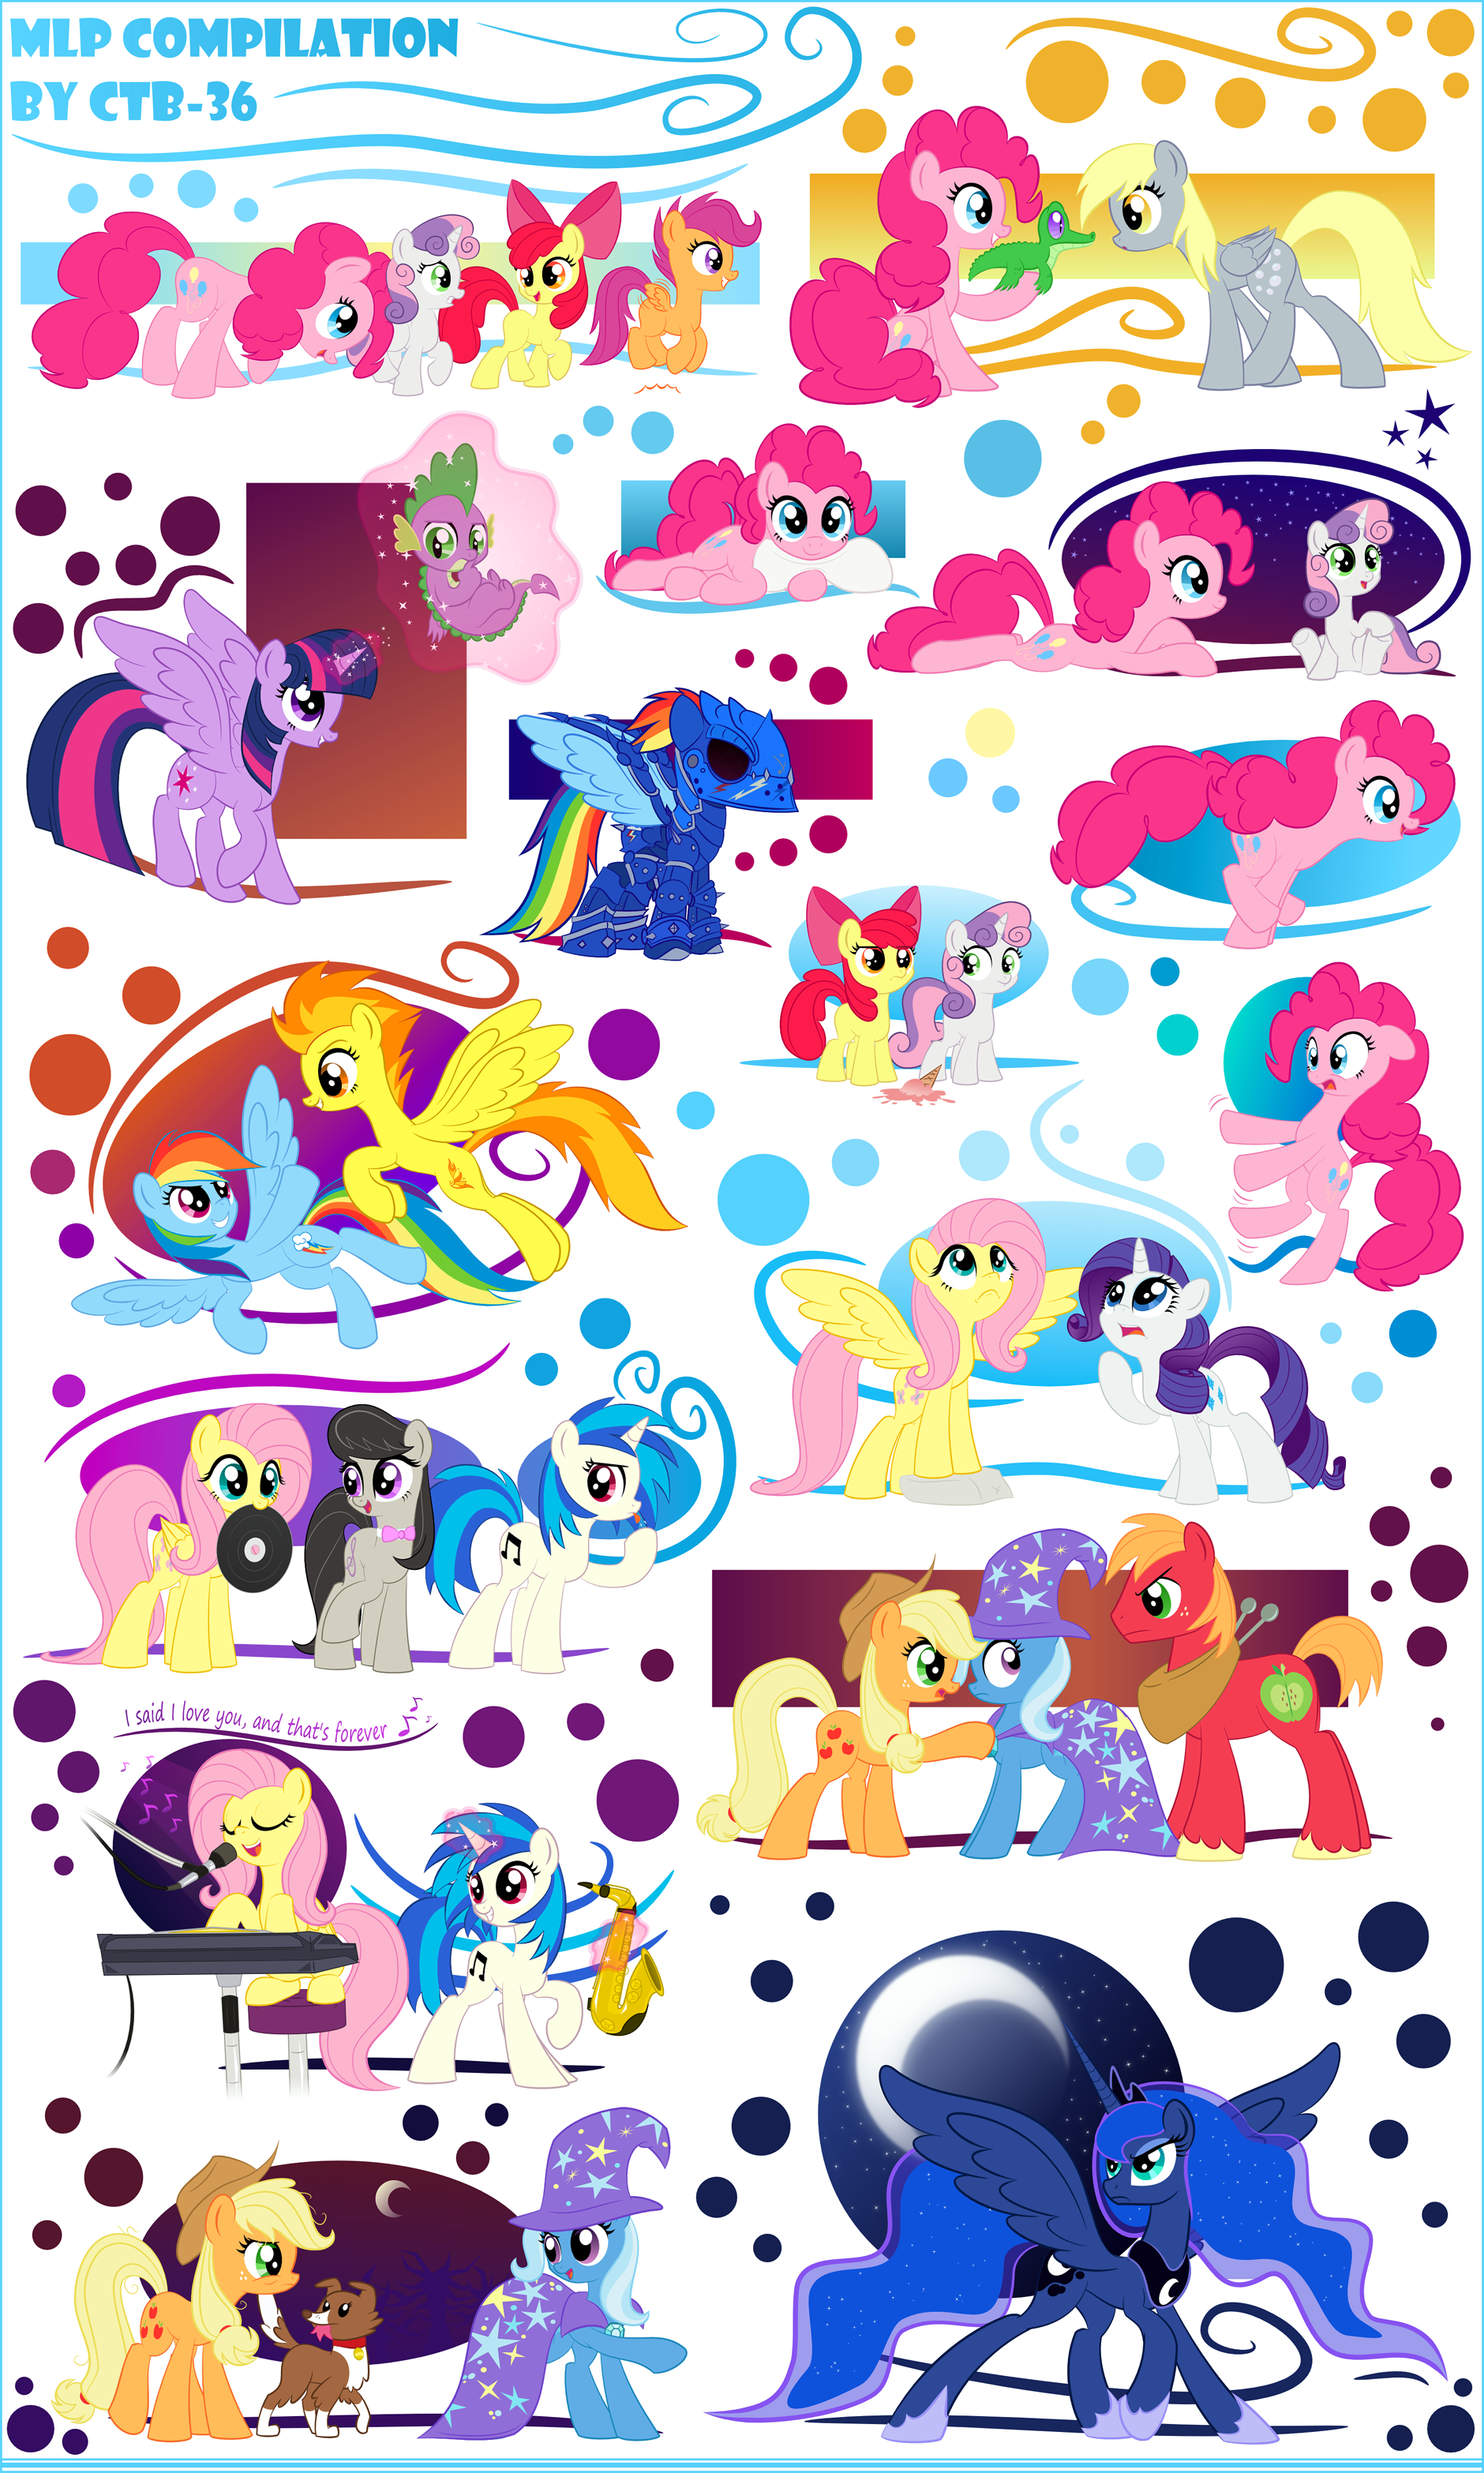 MLP Compilation by CTB-36